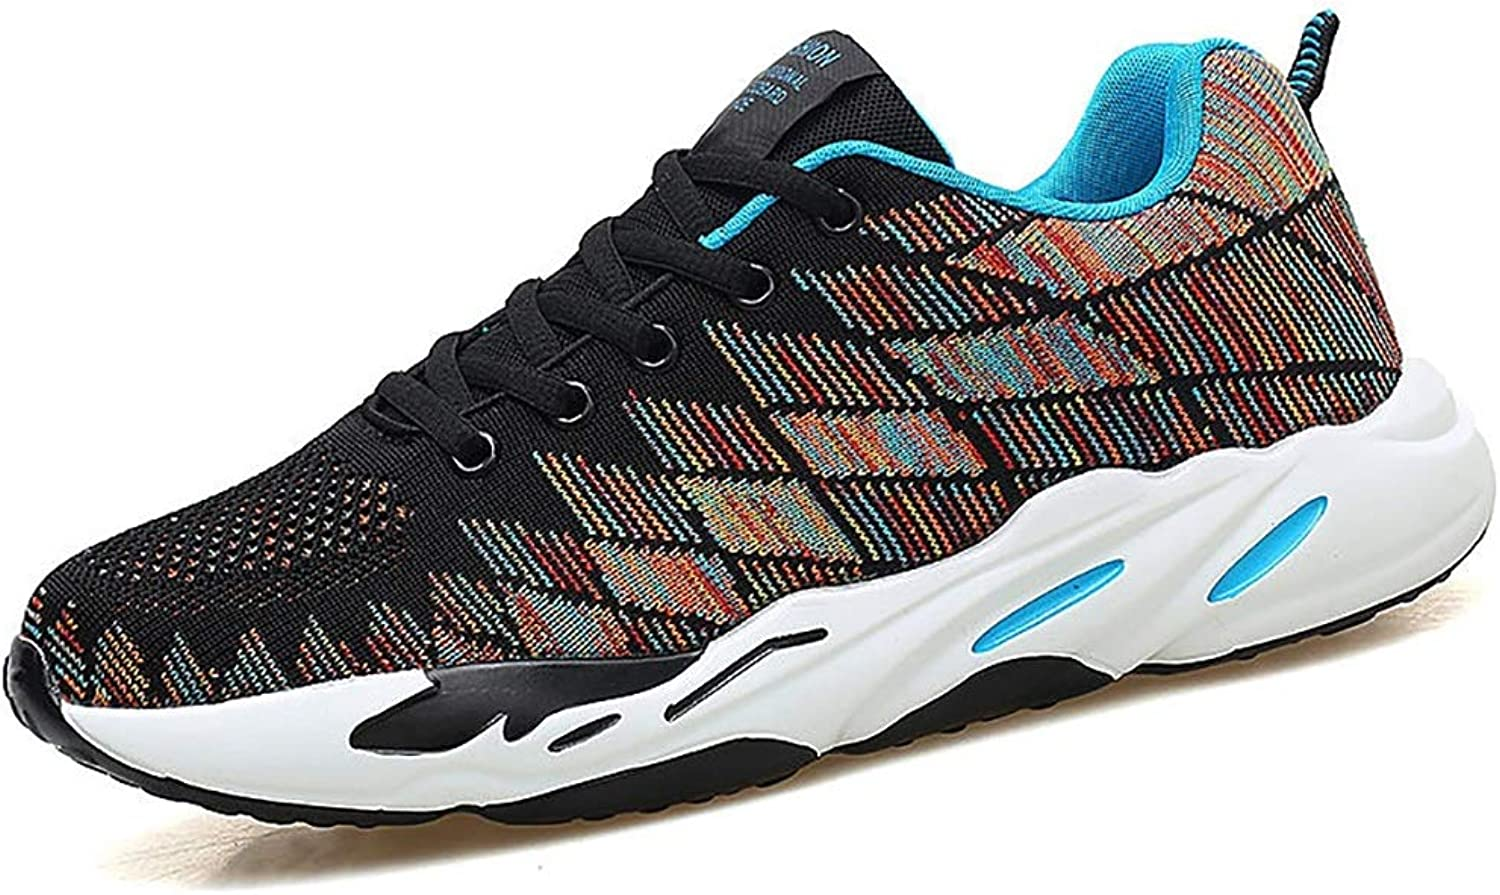 TTRR Spring men's casual shoes running shoes breathable mesh men's shoes teen student shoes (color   C, Size   40)